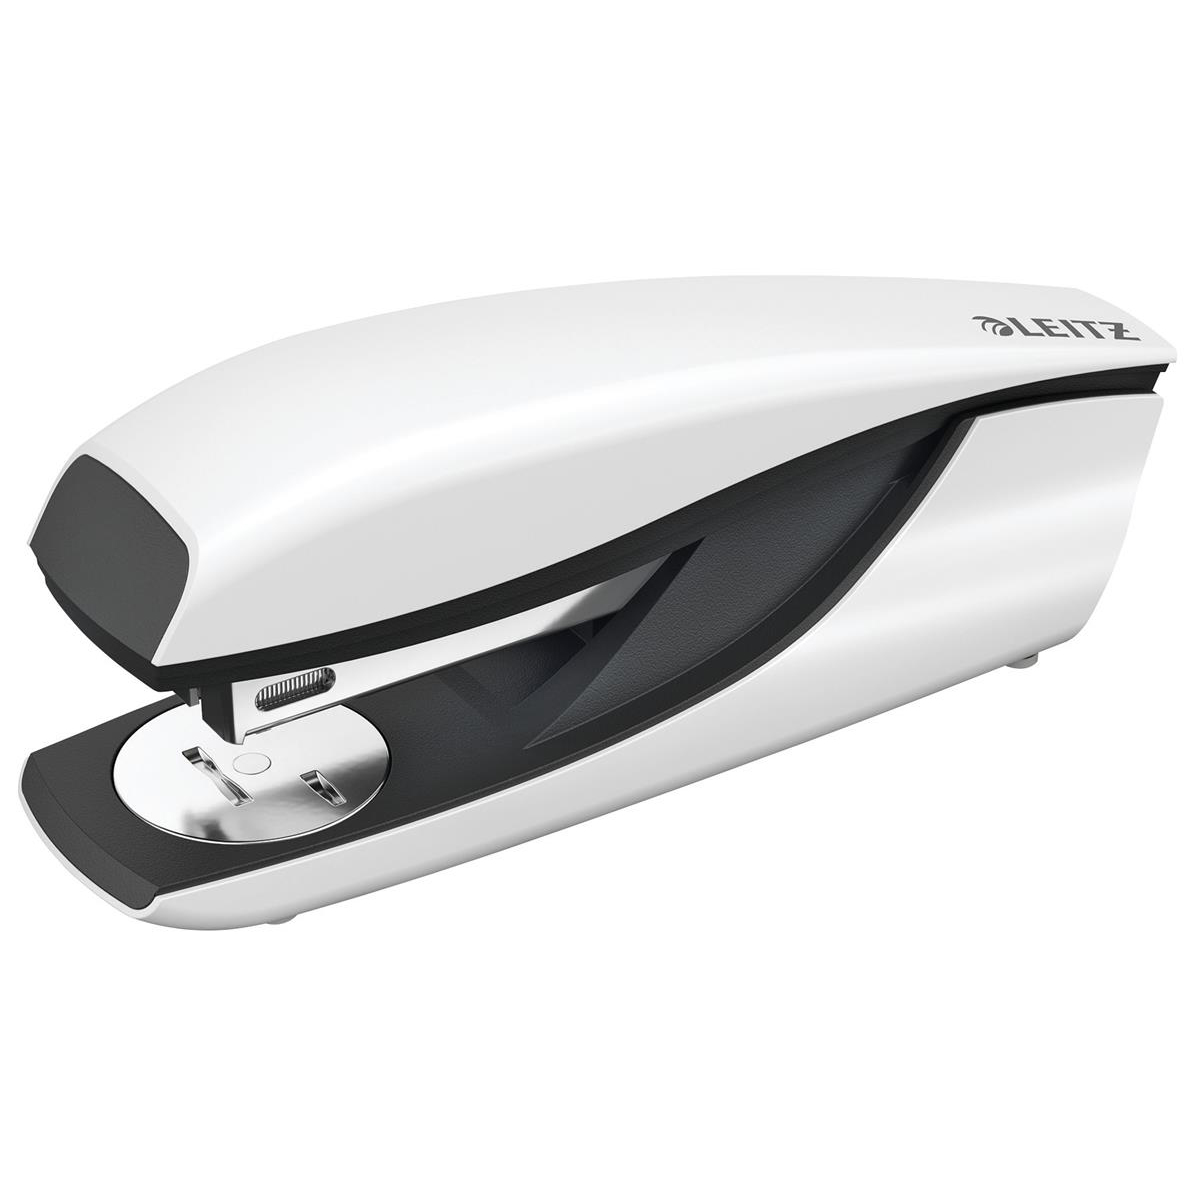 Leitz Office Stapler Pearl White Ref 4010565 [REDEMPTION]